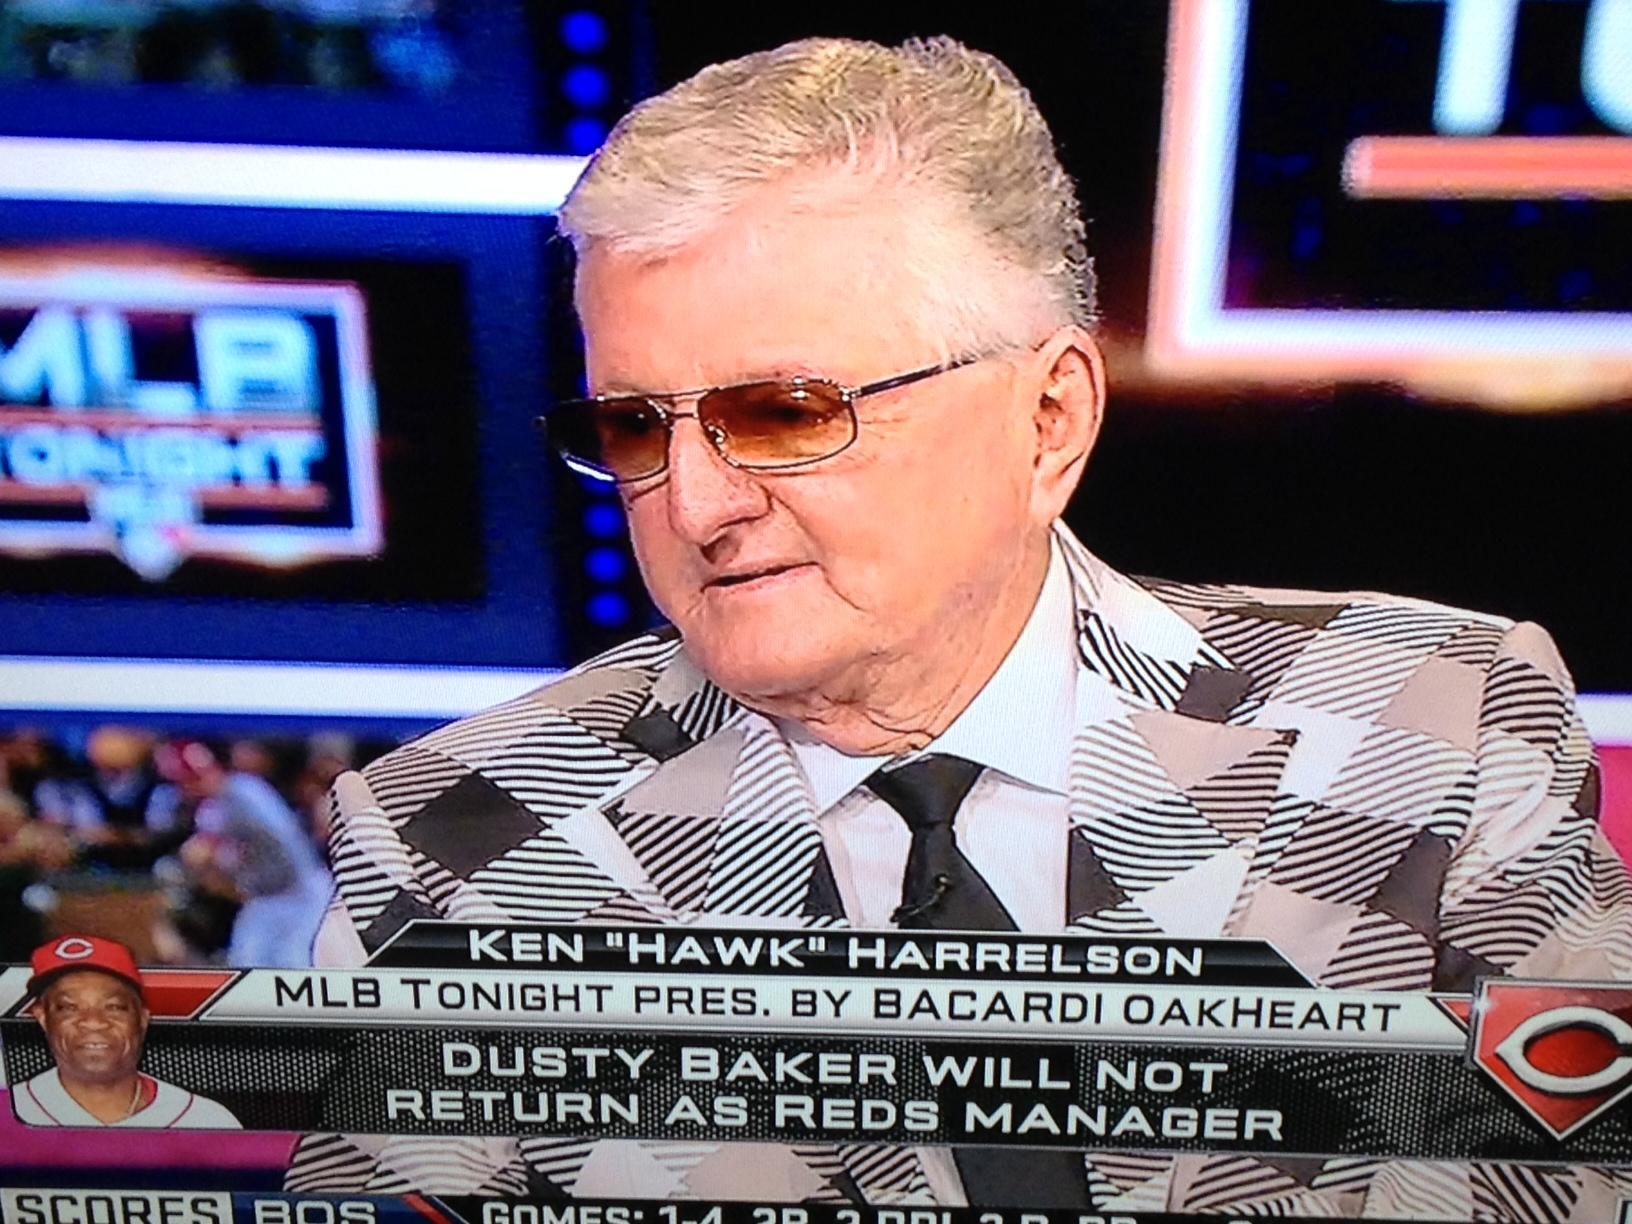 Hawk Harrelson Hated The 2013 Chicago White Sox